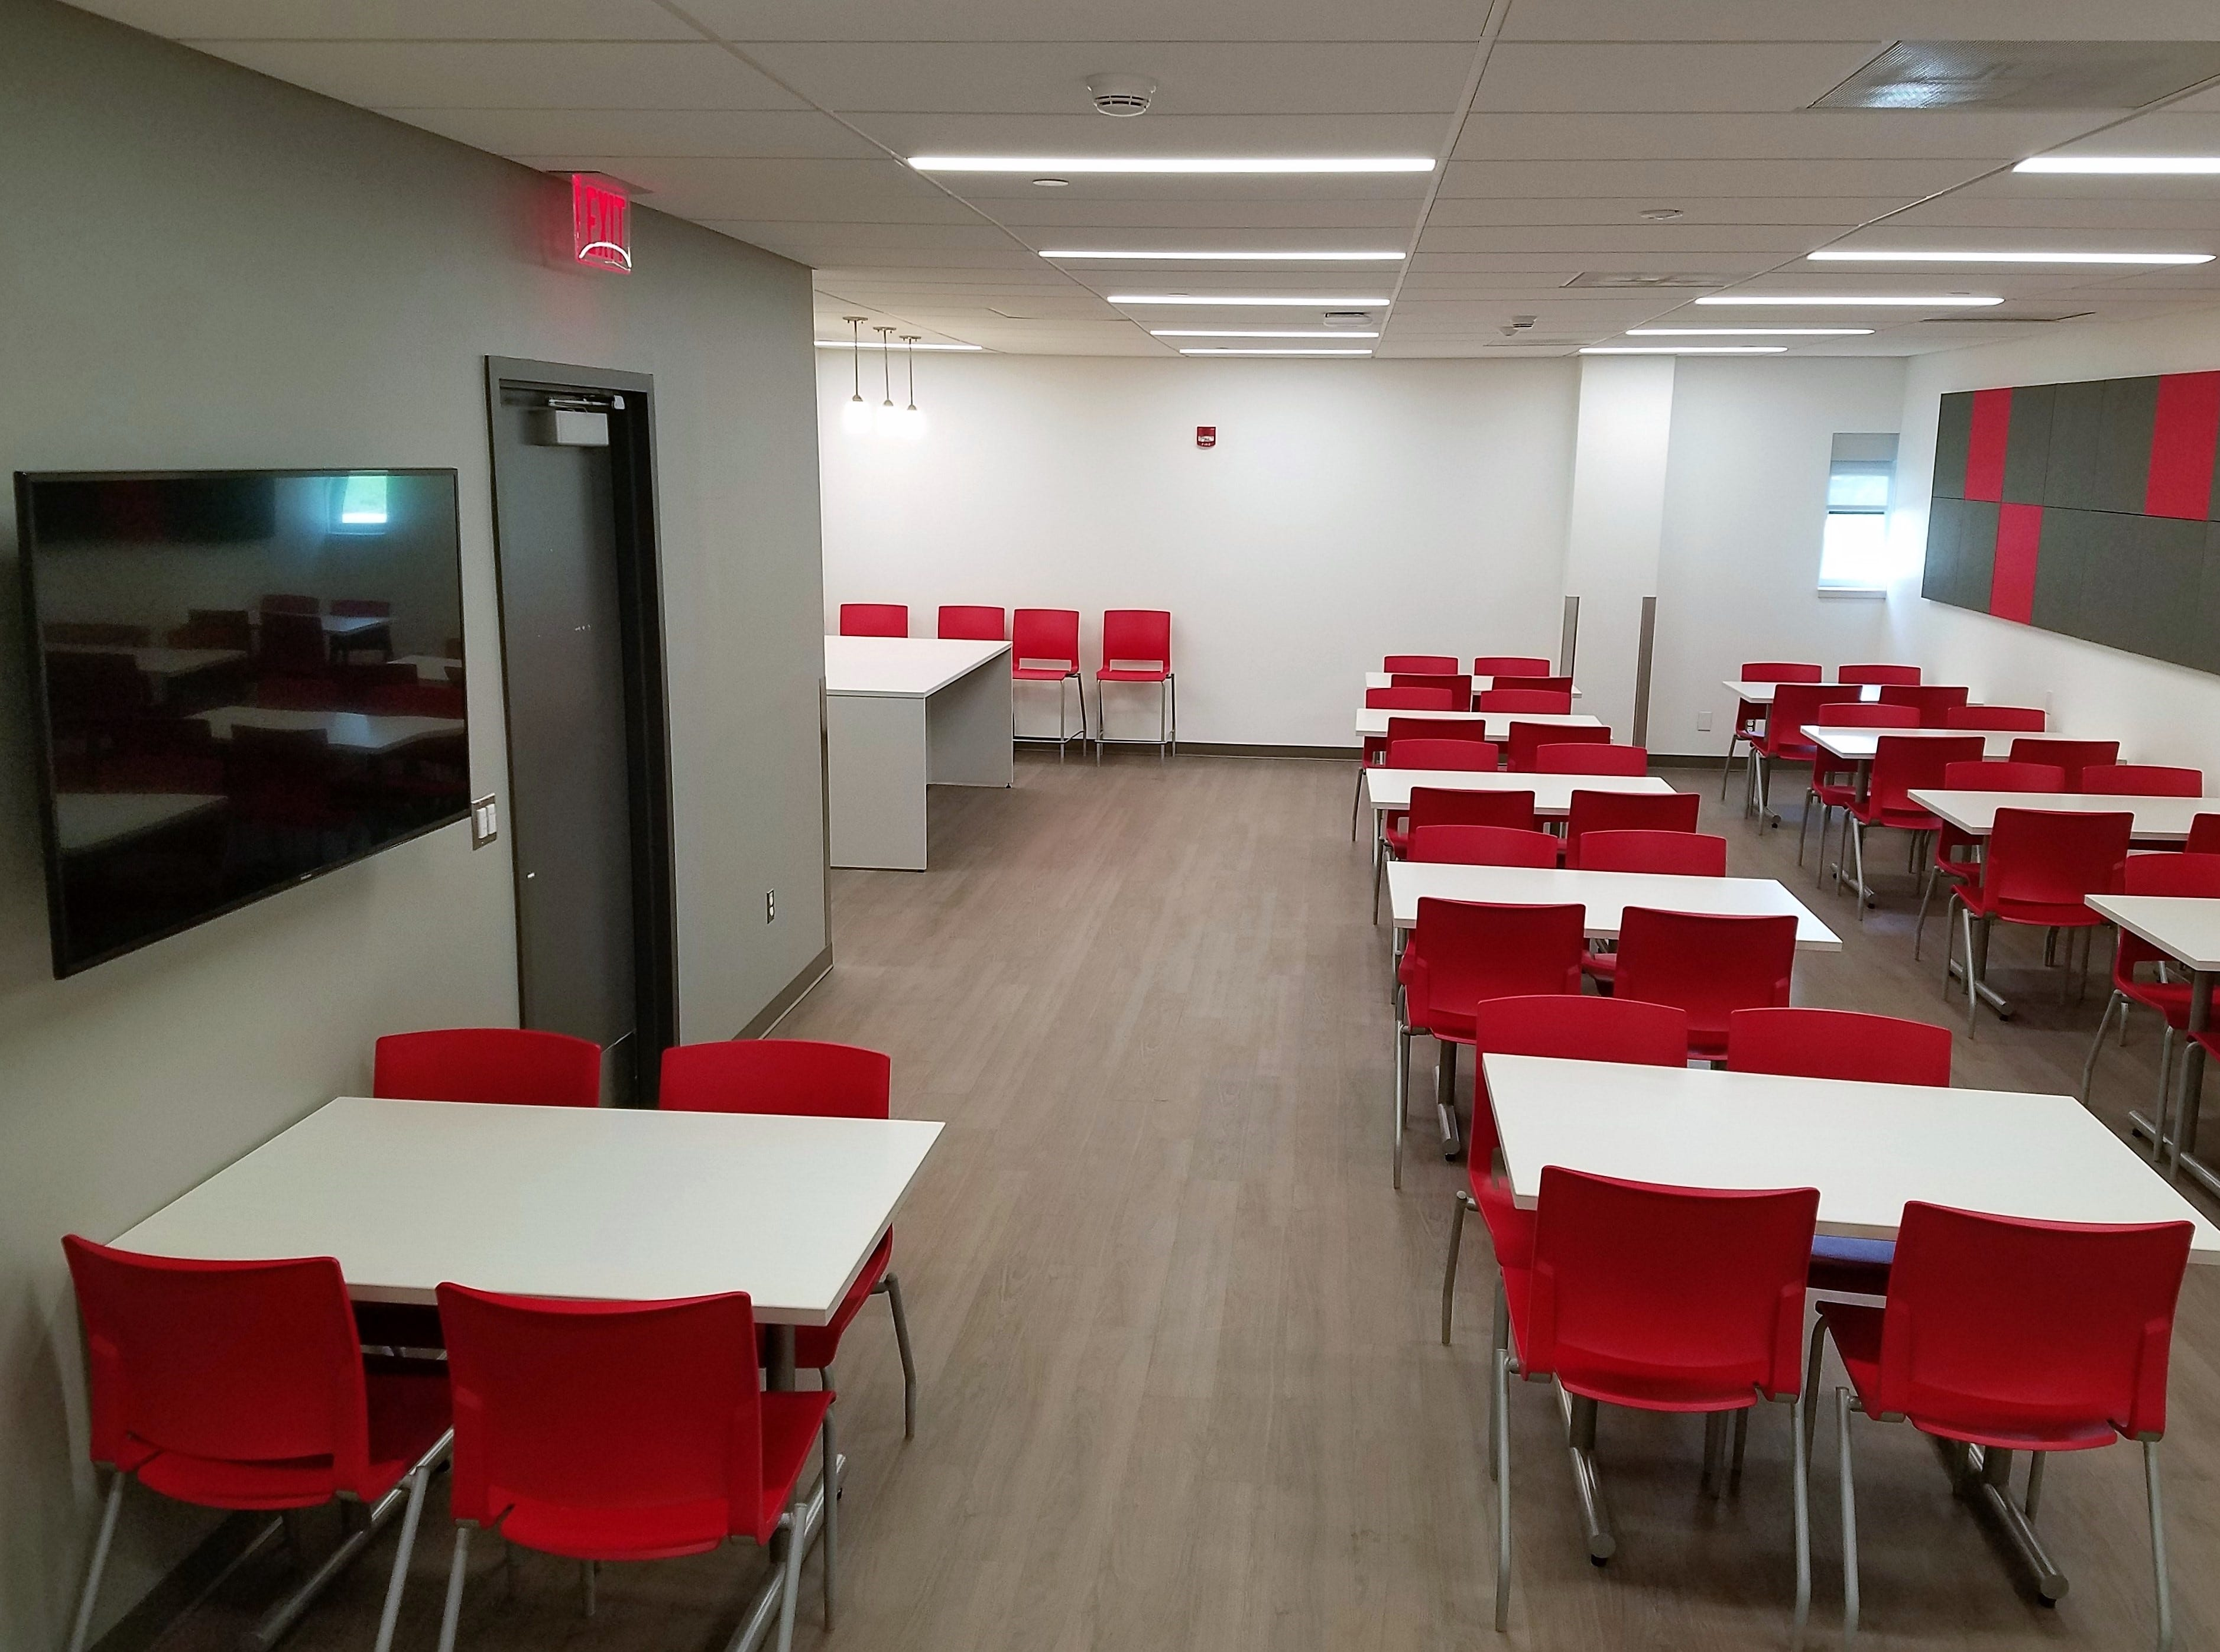 A new student lounge at the Janice H. Levin Building in Piscataway features scarlet seating for 60 in a brightly lit space. Students will be able to bring their lunch, study, and work in the lounge, with easy access to nearby classrooms and restrooms.